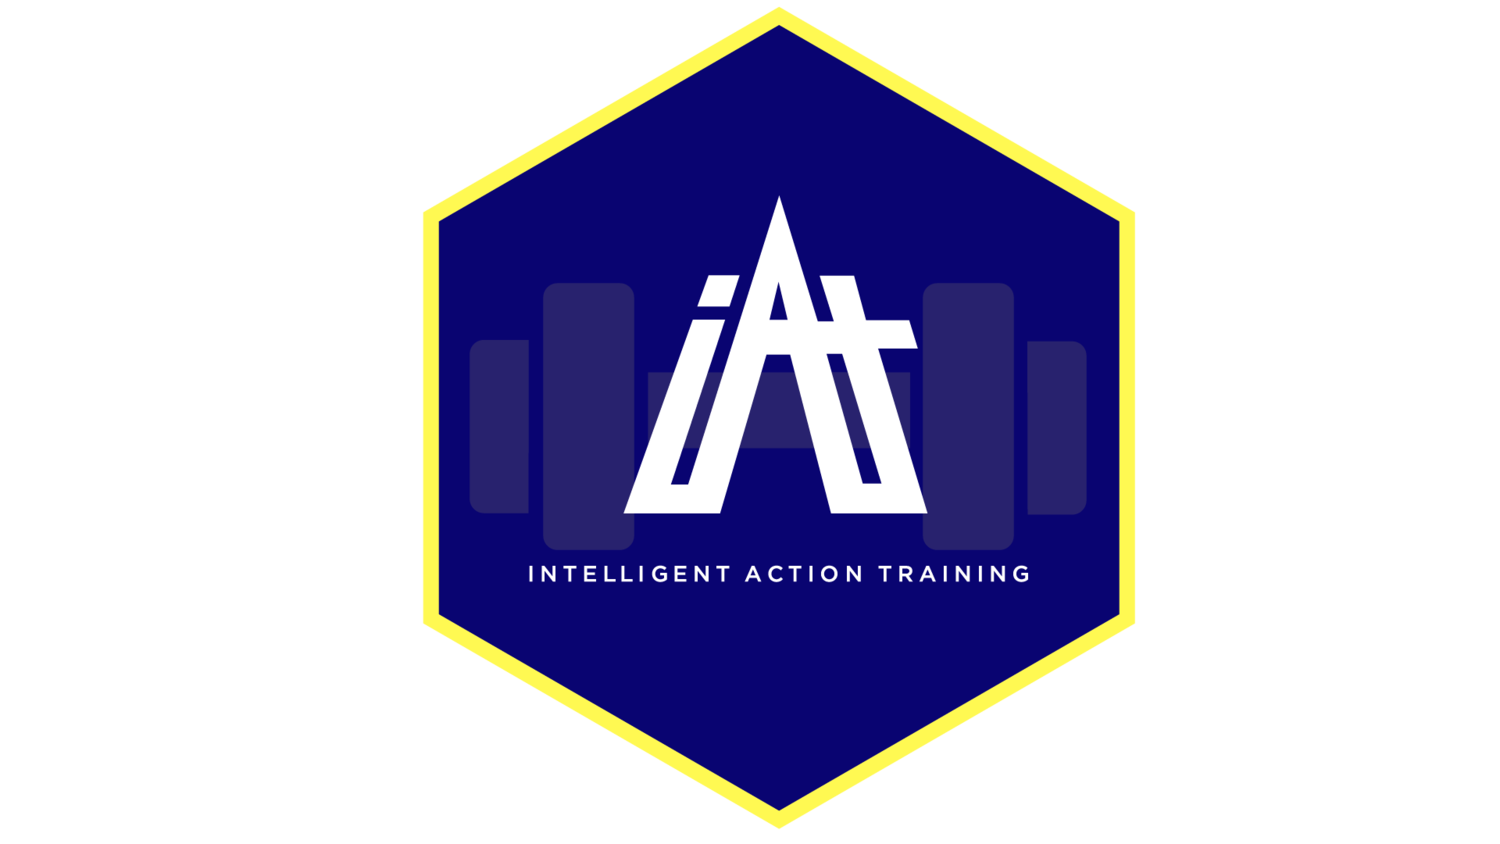 Intelligent Action Training